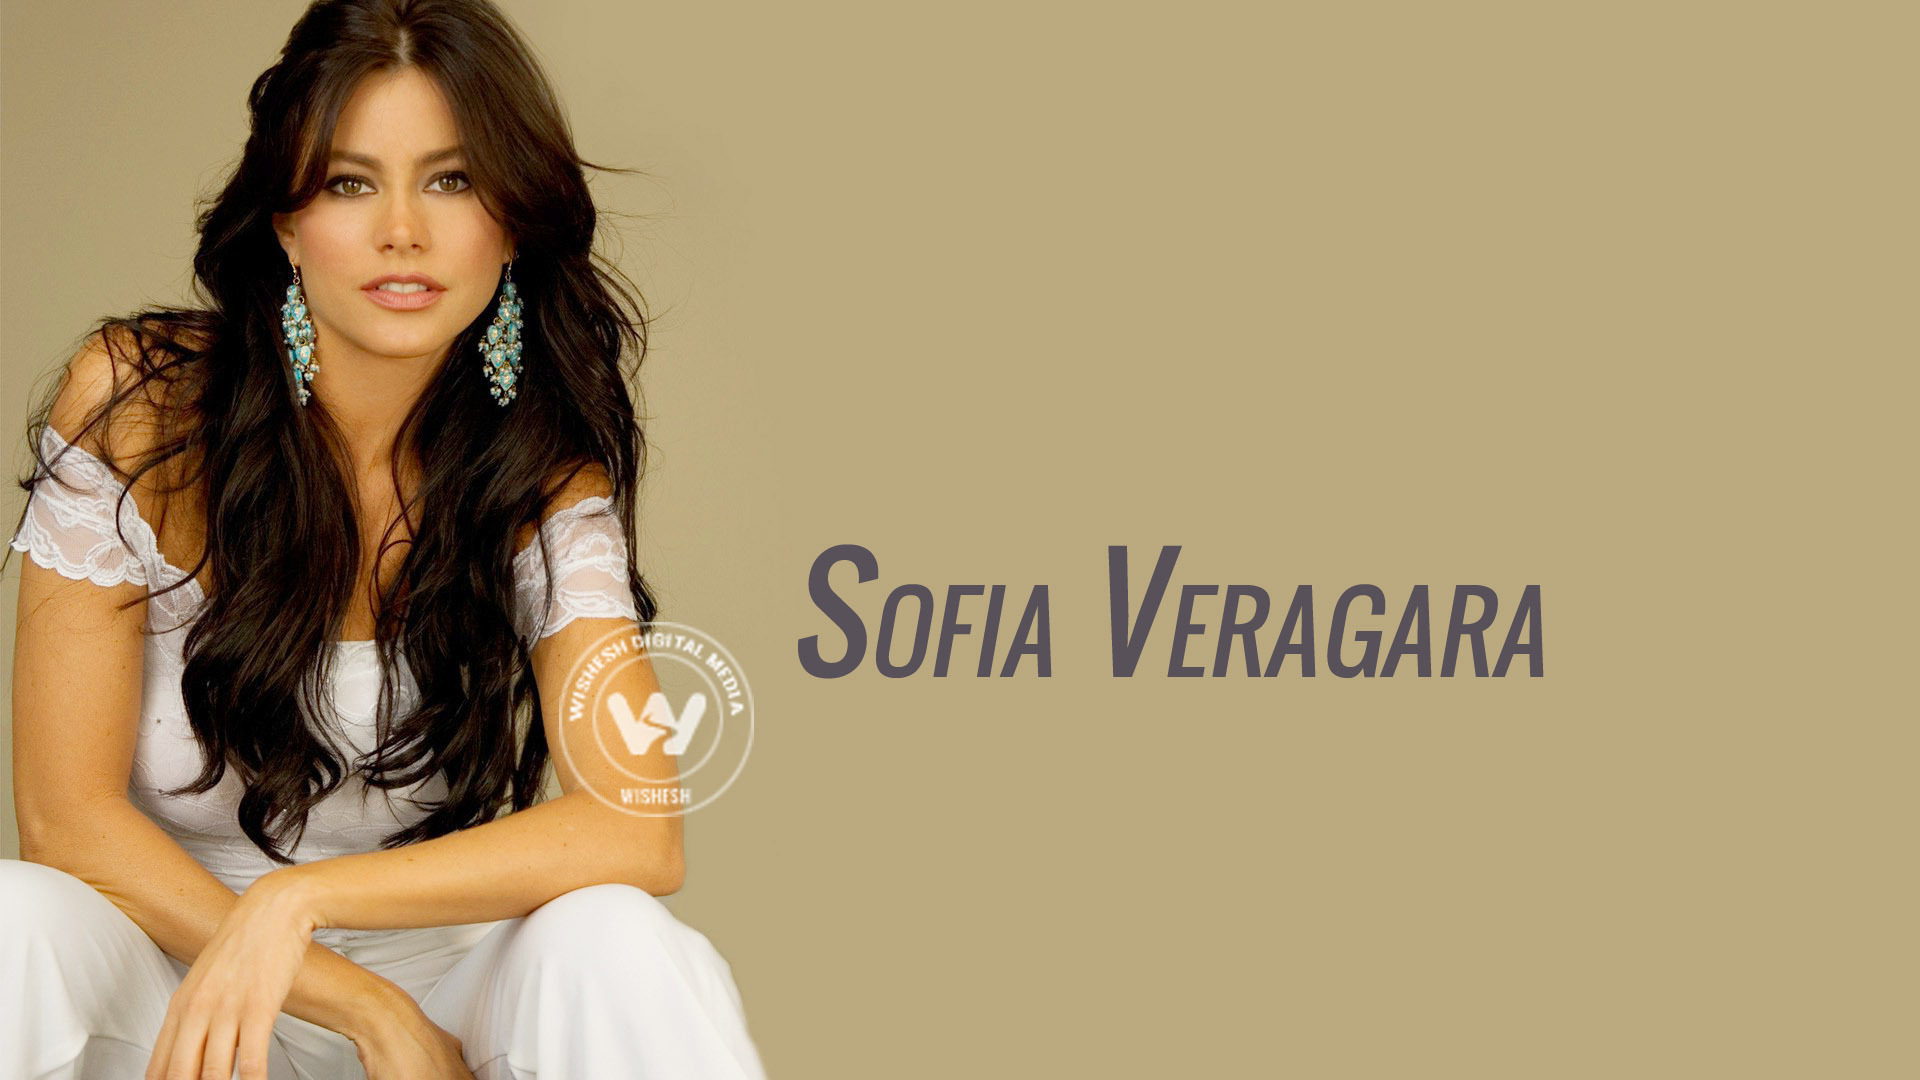 Sofia Vergara Wallpaper Hd